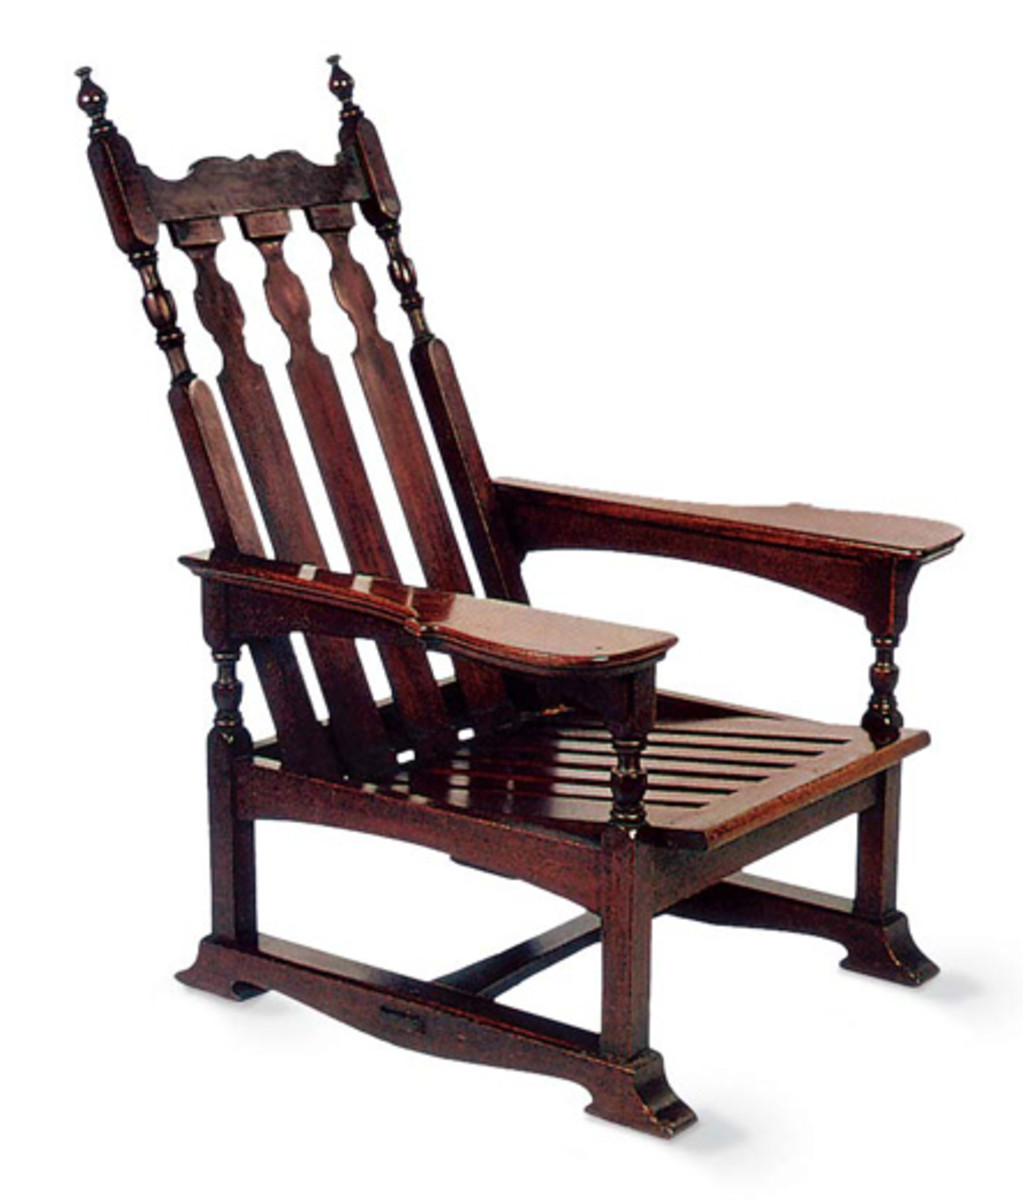 hand-crafted Gothic-inspired Morris Chair by American William Price